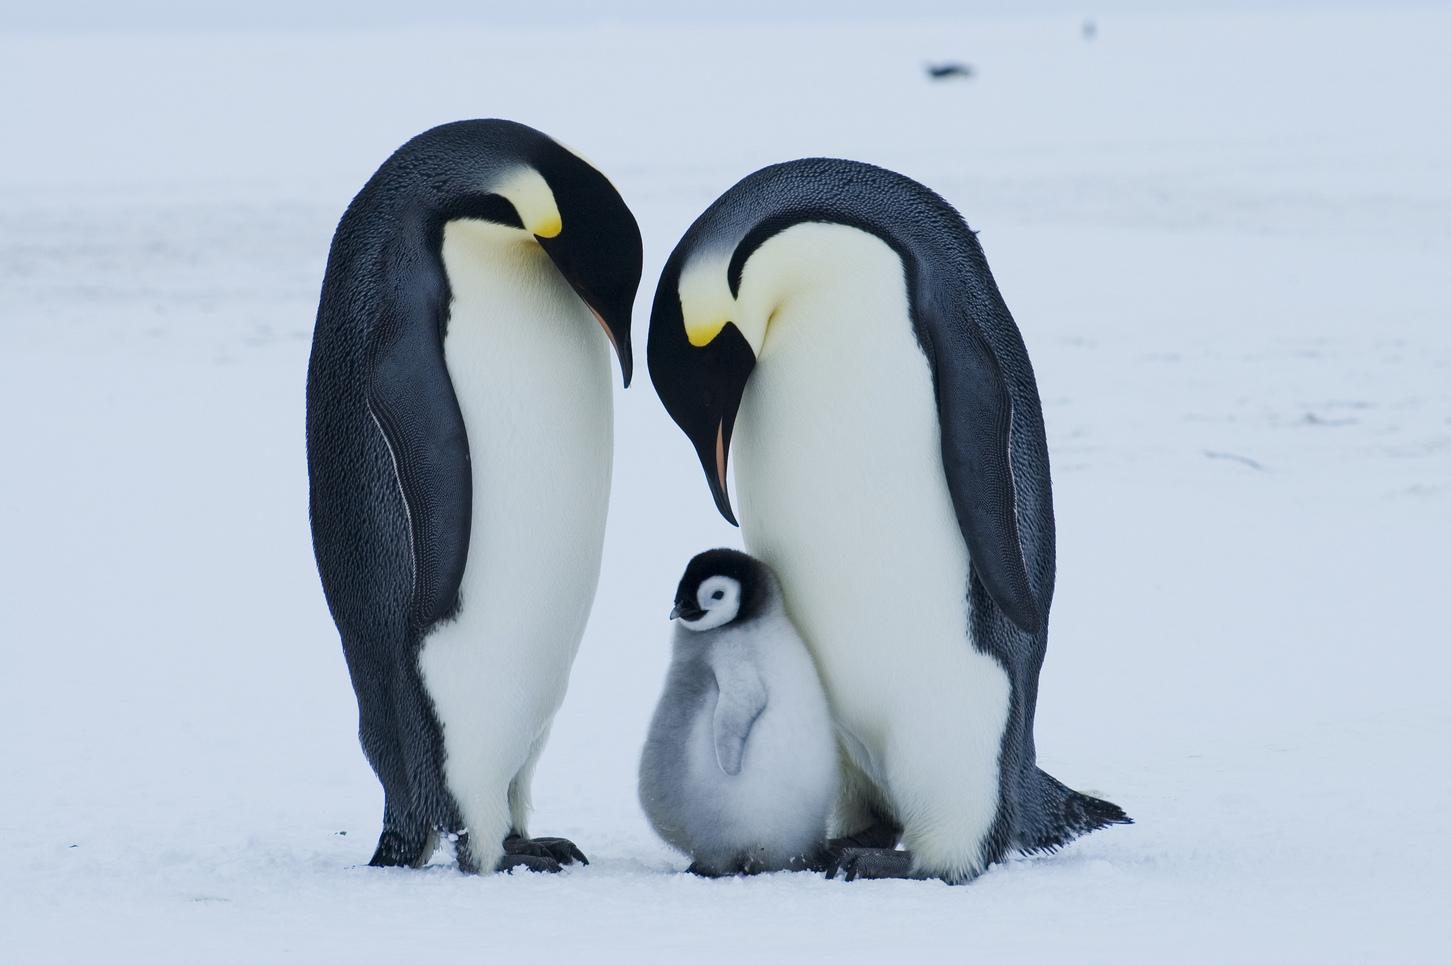 Penguin family photo